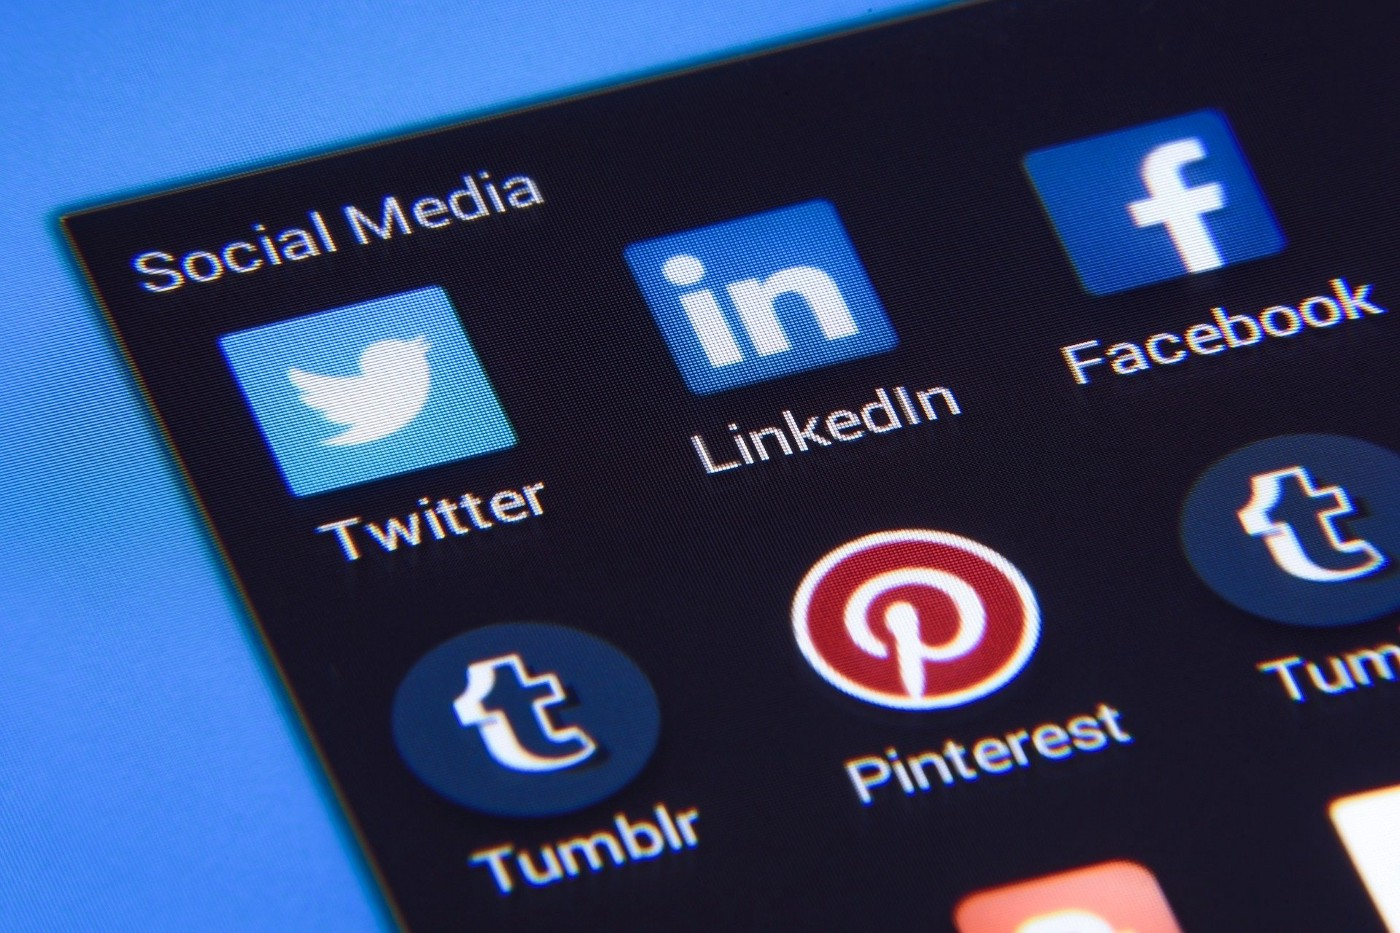 Phone screen showing icons for social media sites such as Twitter, LinkedIn, Facebook, Tumblr, and Pinterest.